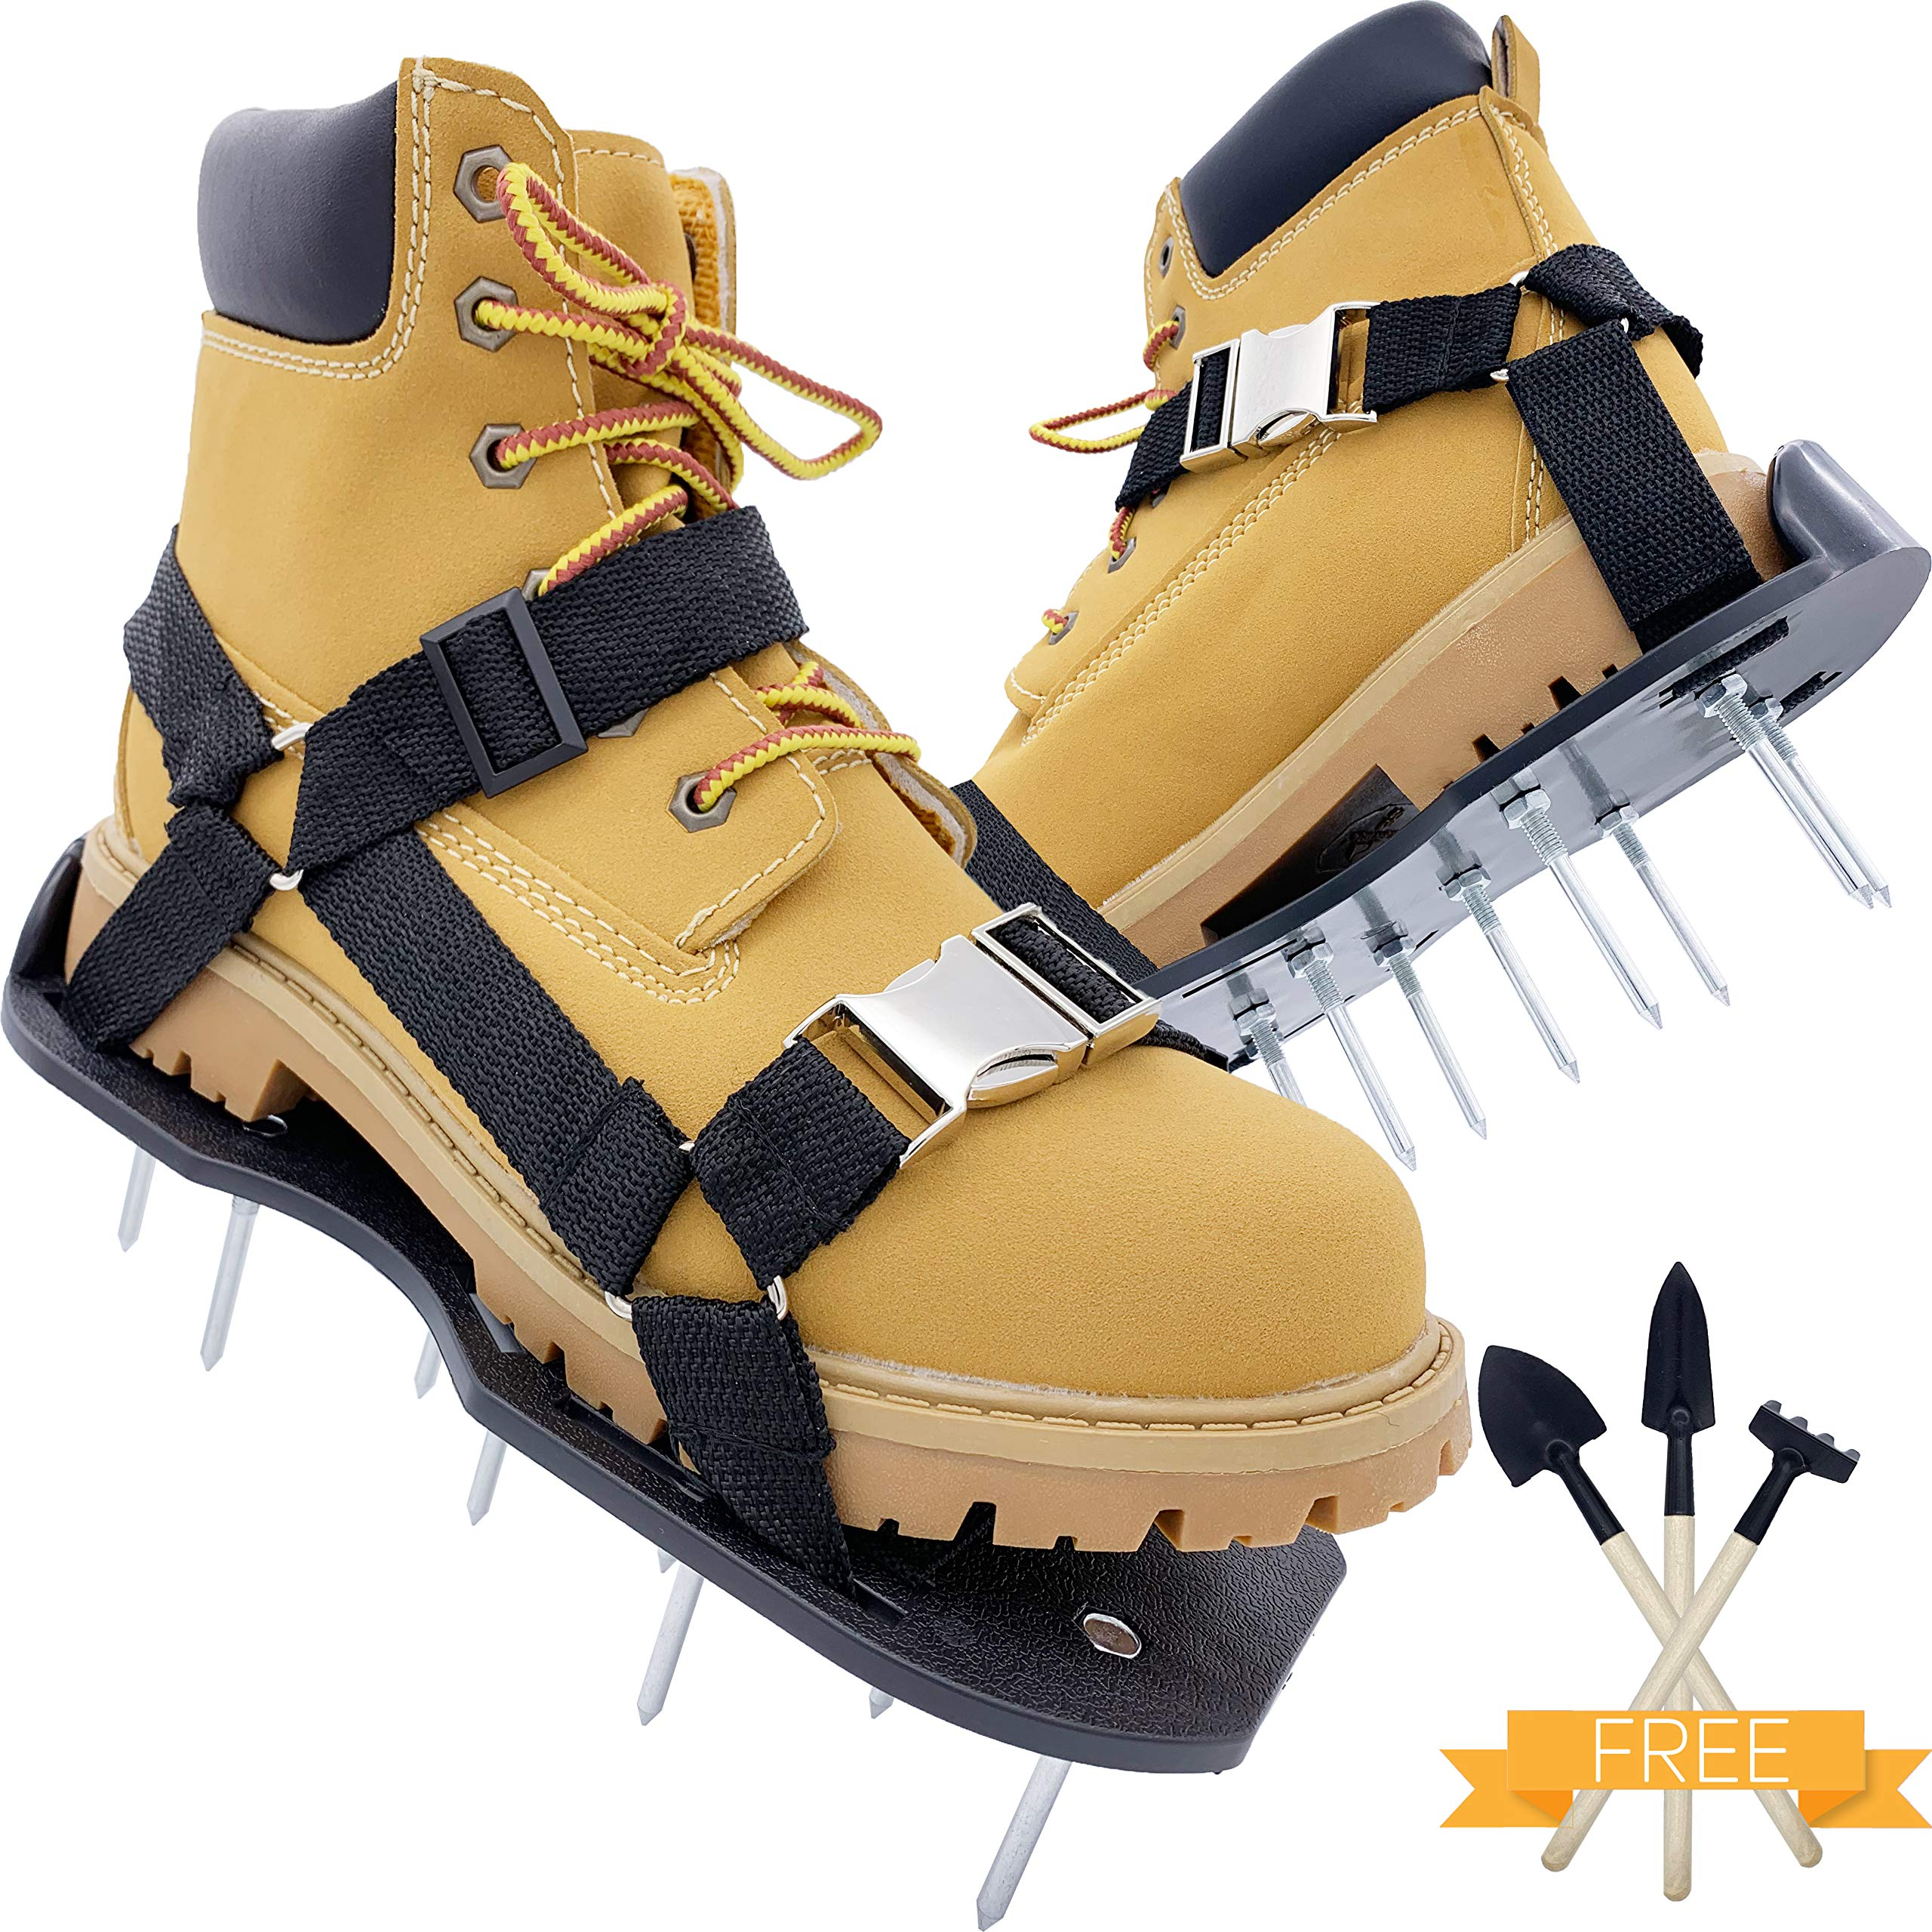 PBC Products Lawn Aerator Shoes with Supportive Straps and Metal Buckles, Heavy Duty Aerating Sandals with Metal Spikes for Lawn and Yard Grass Aeration, Withstand Up to 400LB by PBC Products